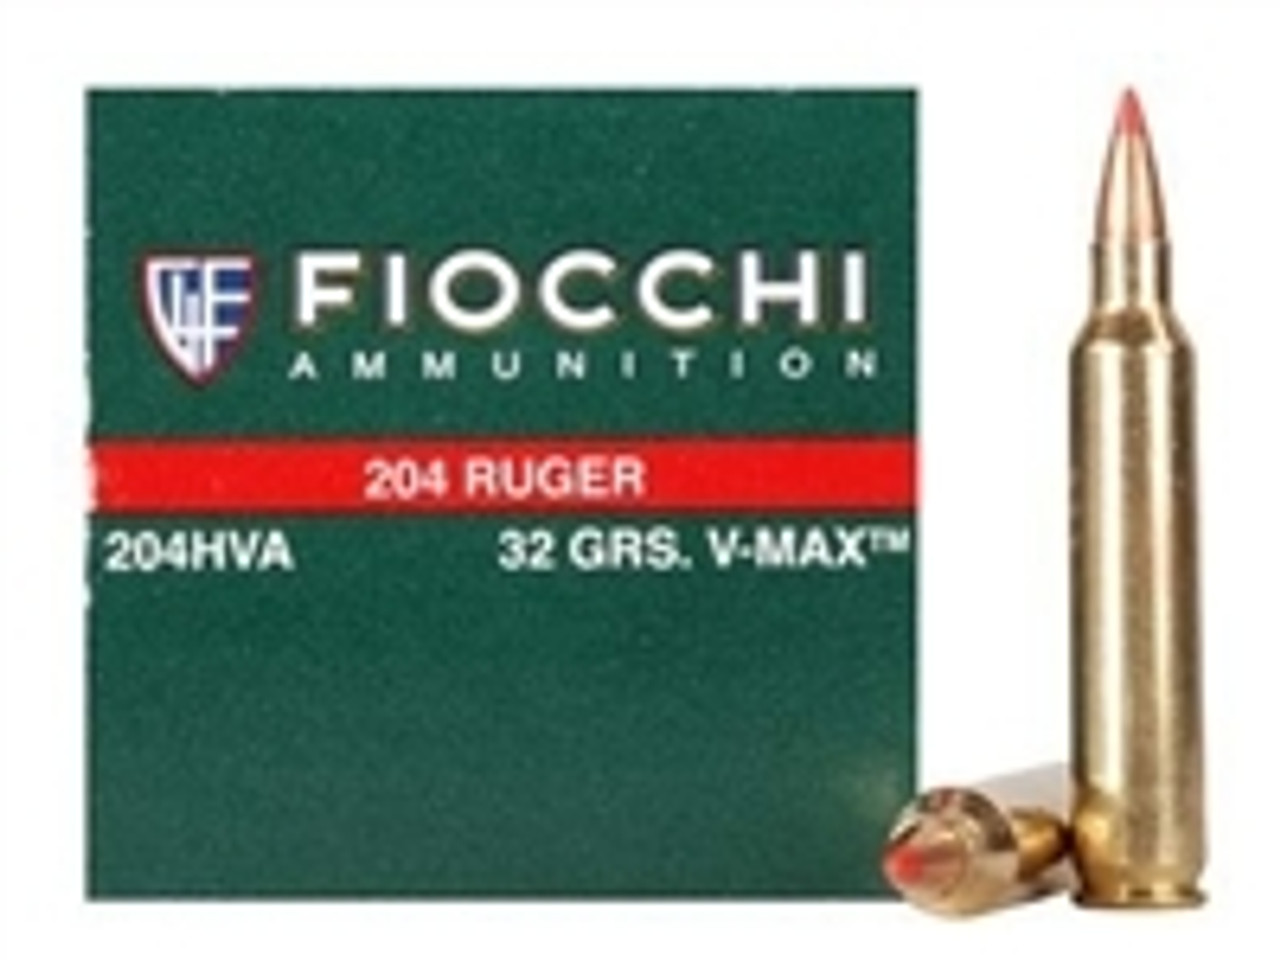 204 Ruger Ammo